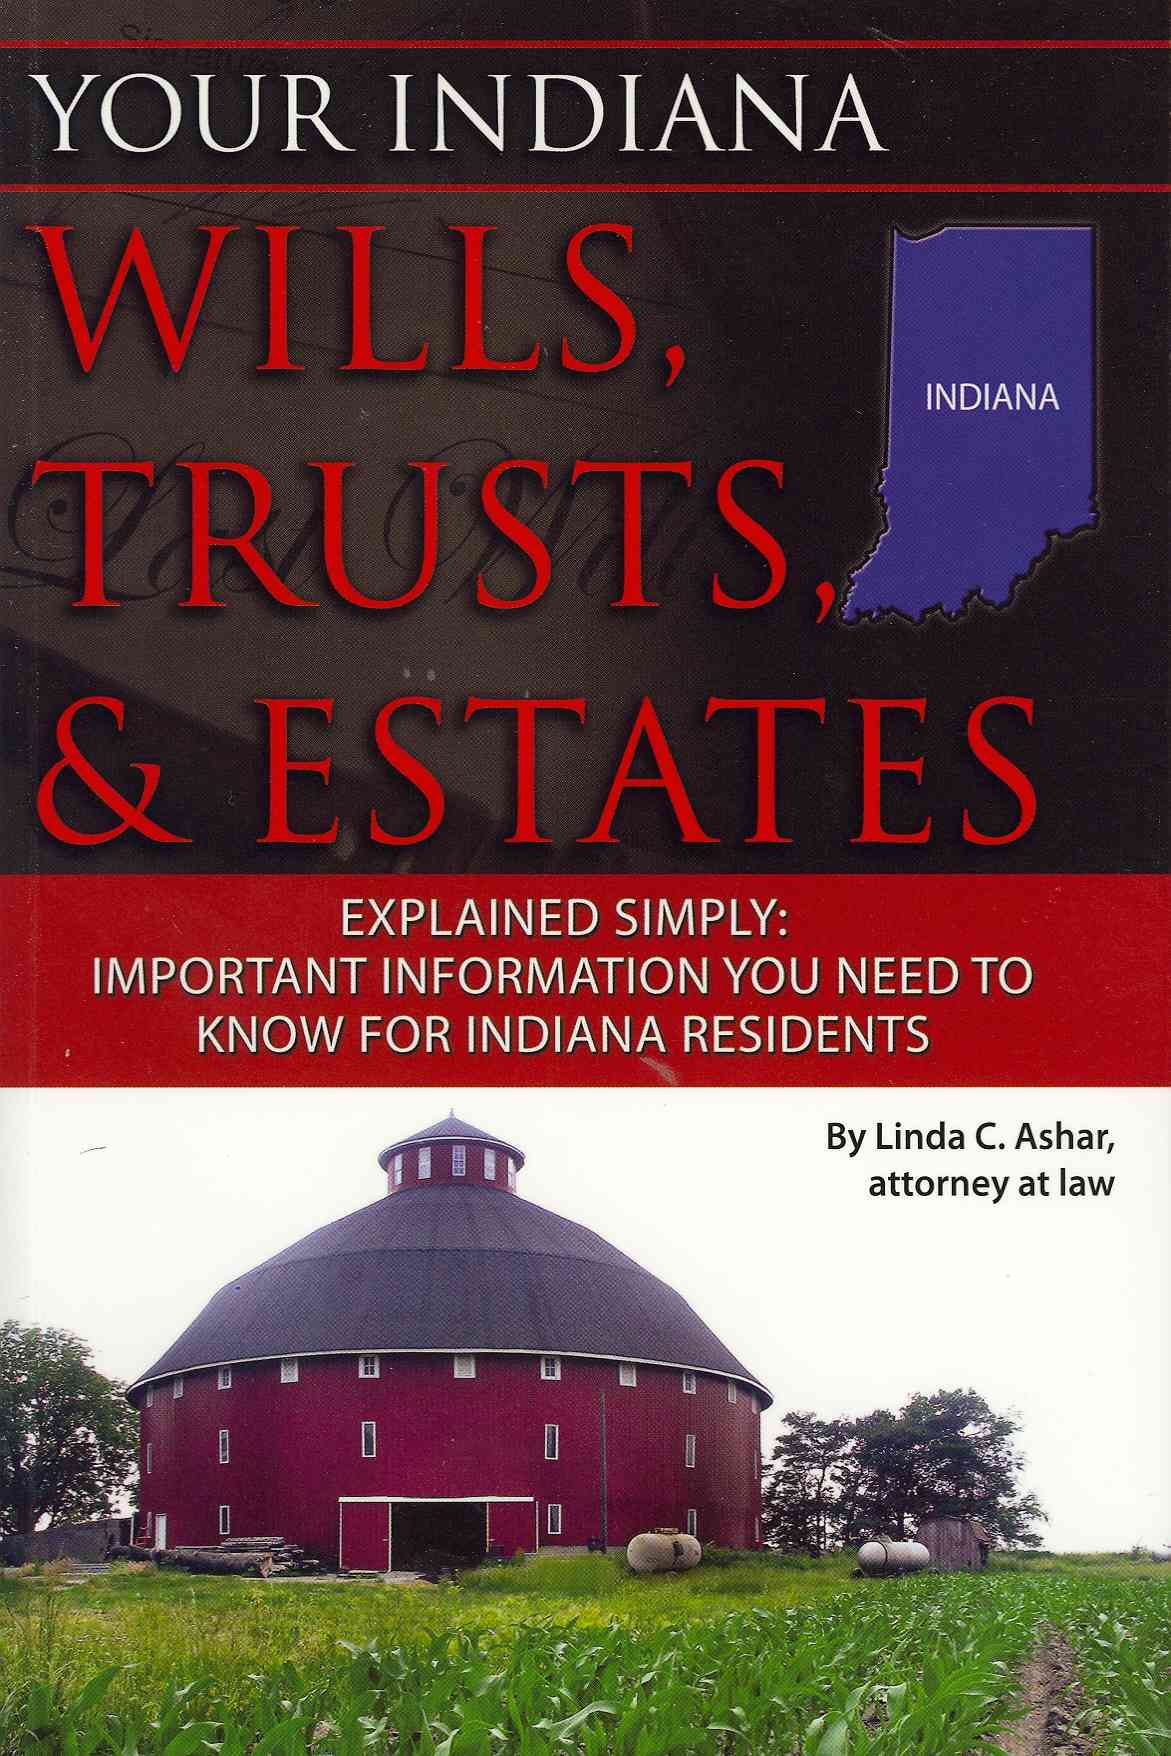 Your Indiana Wills, Trusts, & Estates Explained Simply: Important Information You Need to Know for Indiana Residents (Paperback) - Thumbnail 0